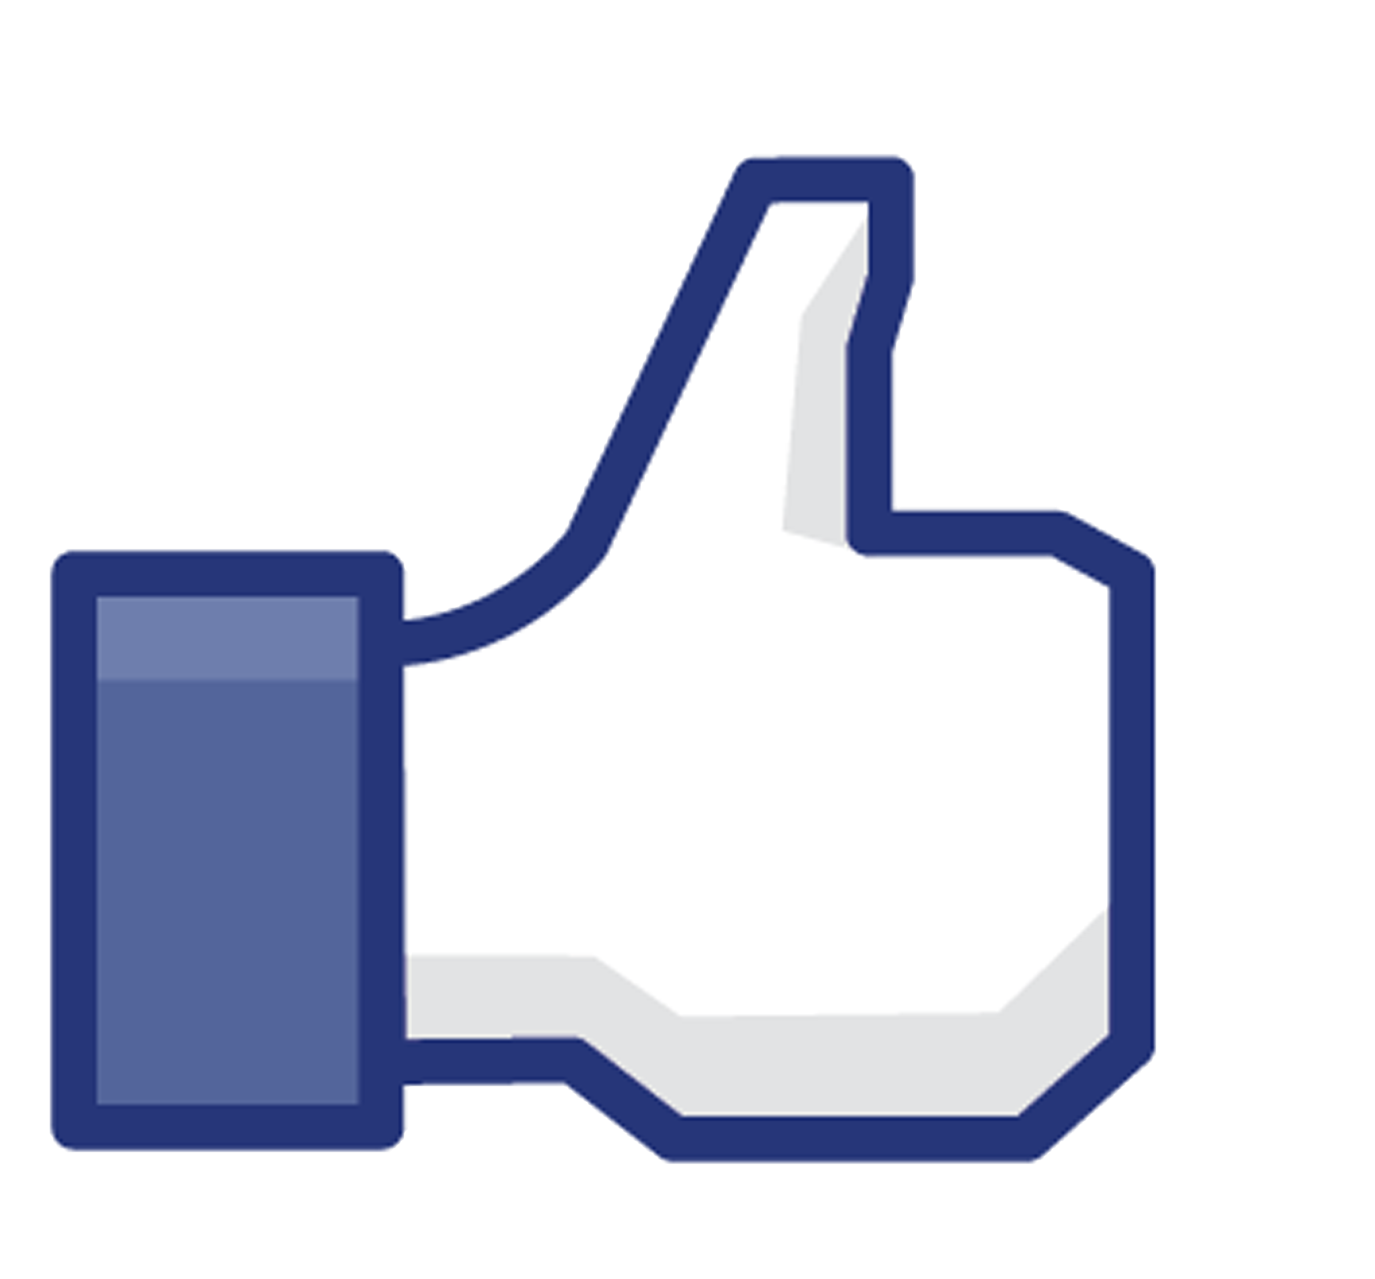 Image png. Facebook like buton call